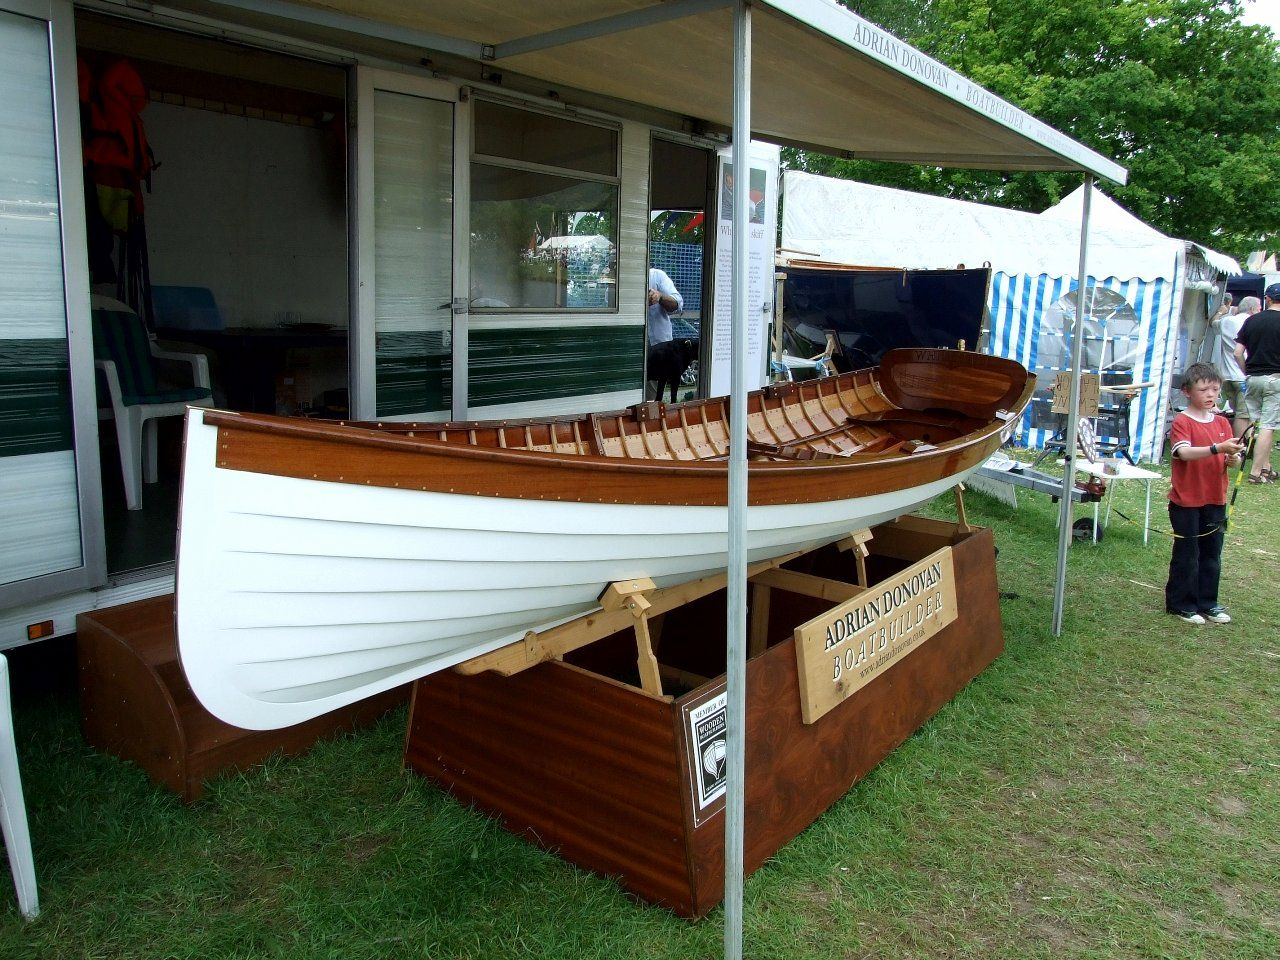 Rowing boats - A whitehall built in the UK